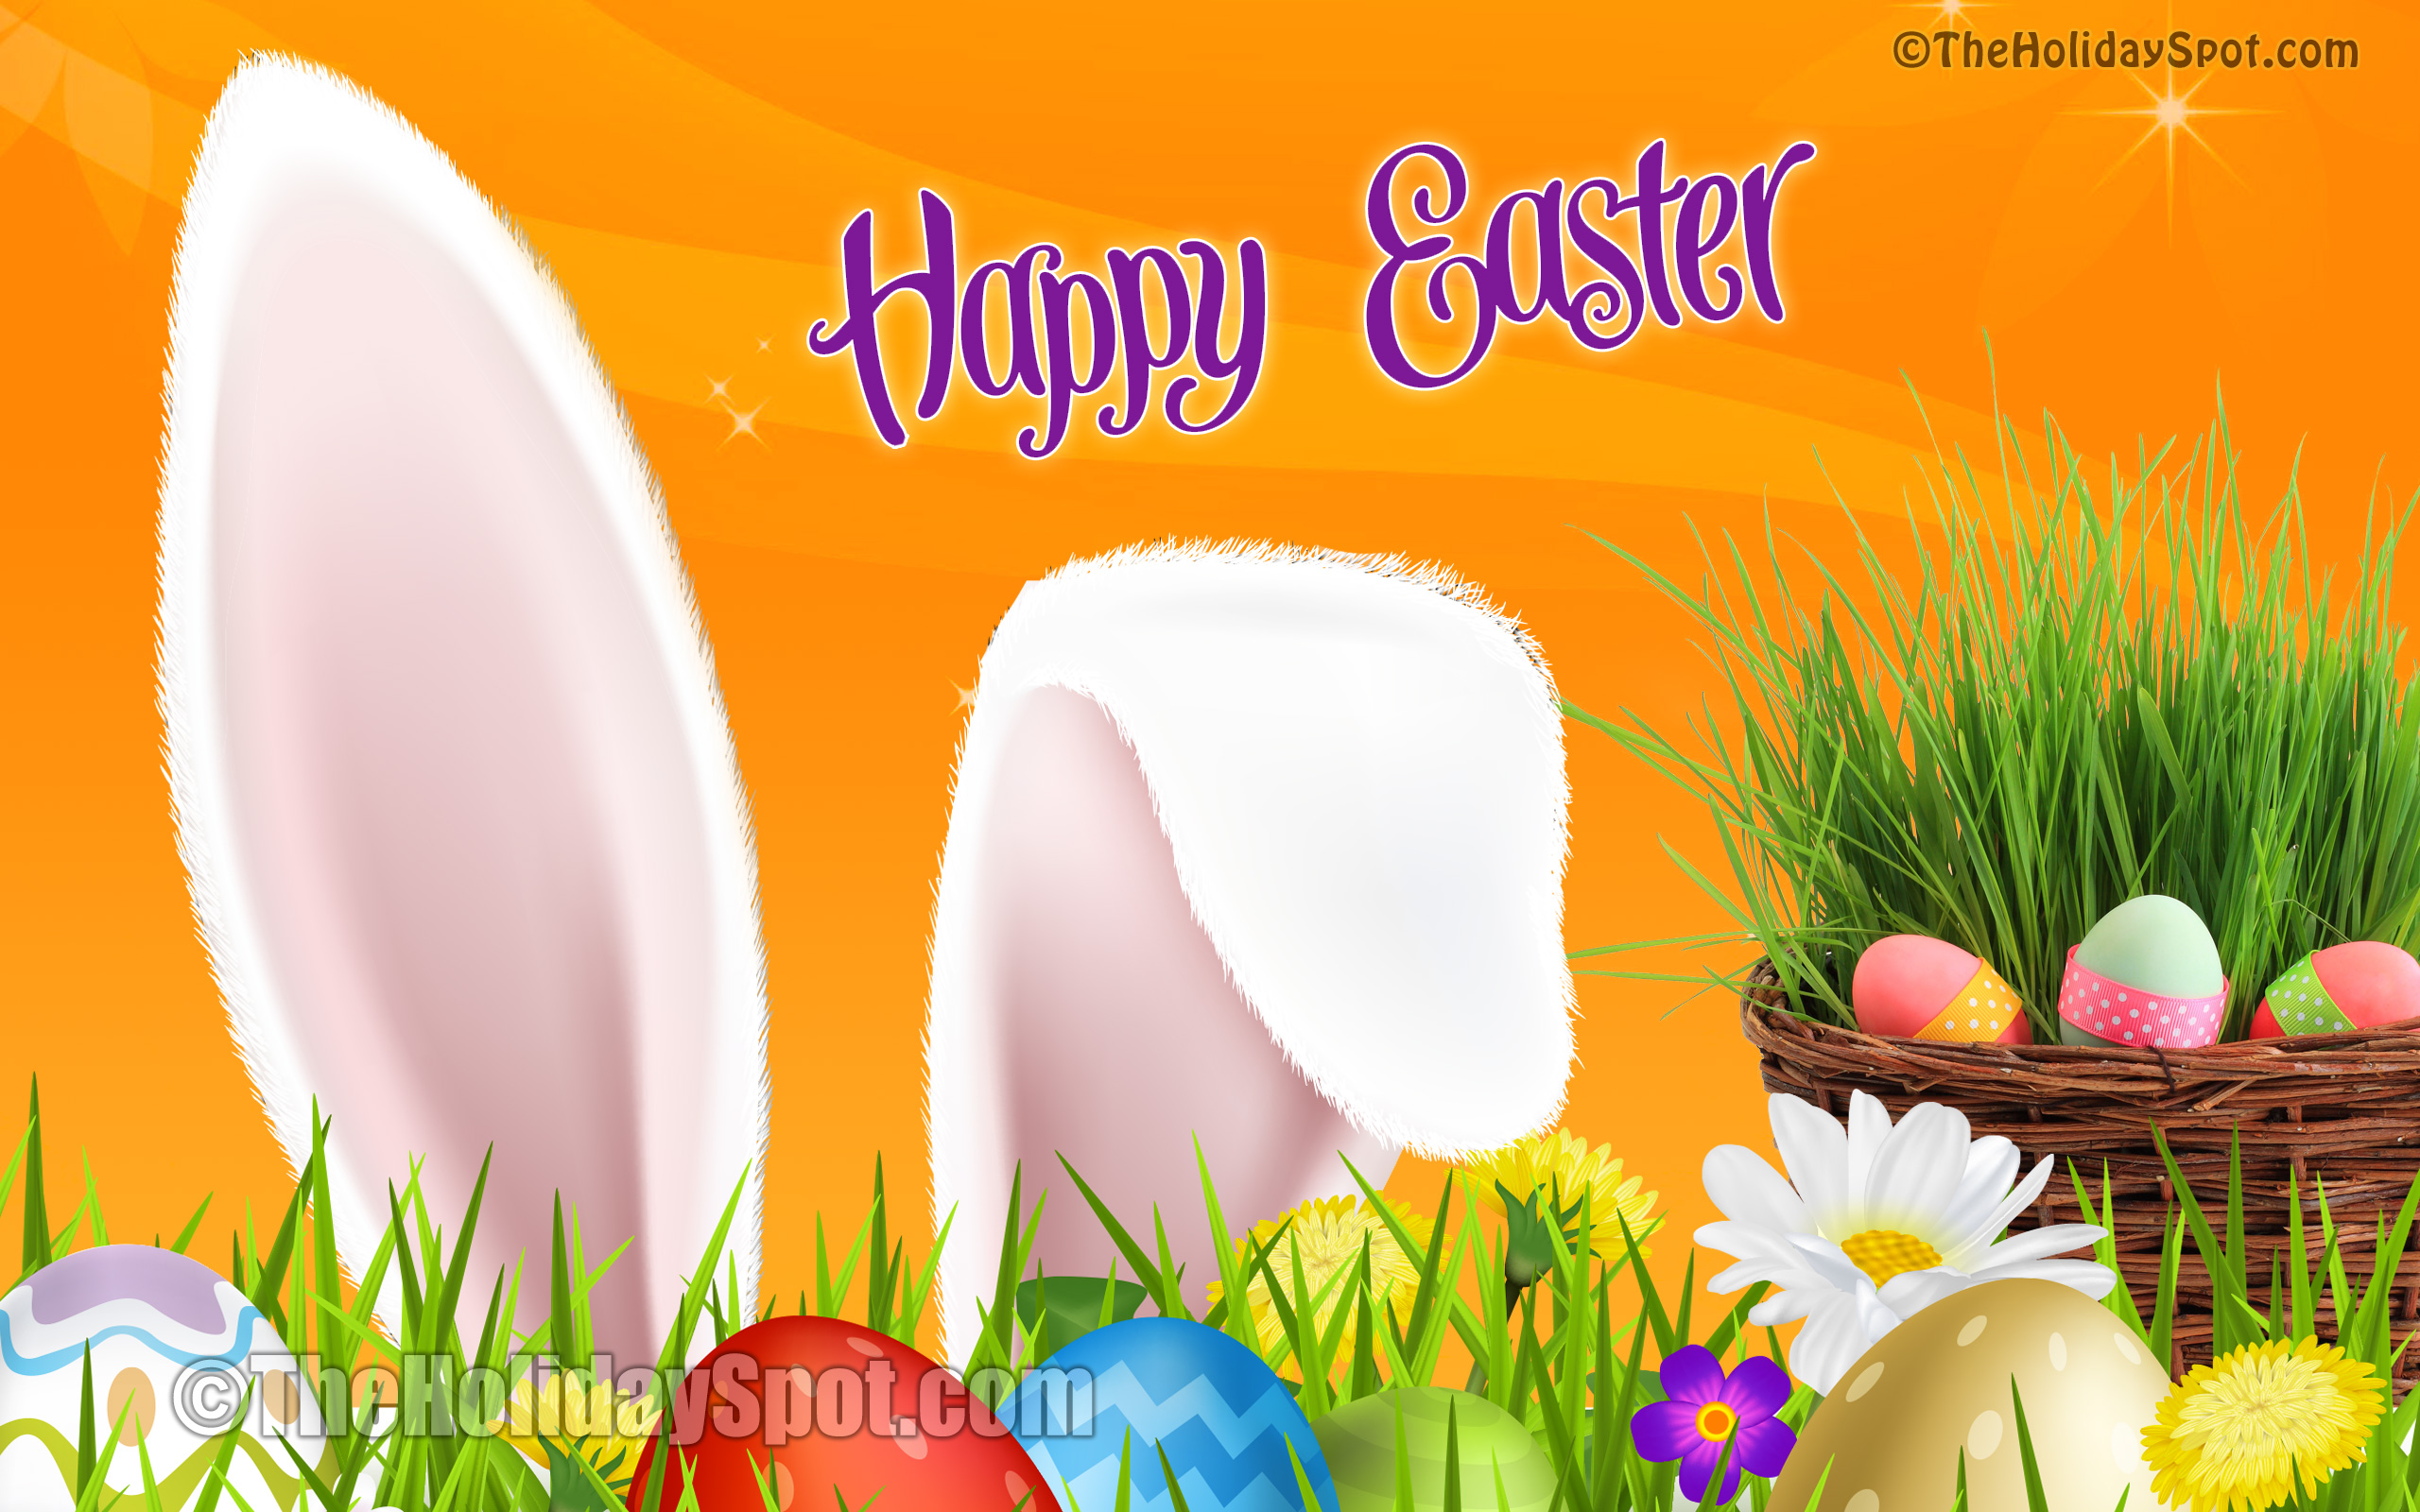 HD Colorful Wallpaper With Easter Wishes